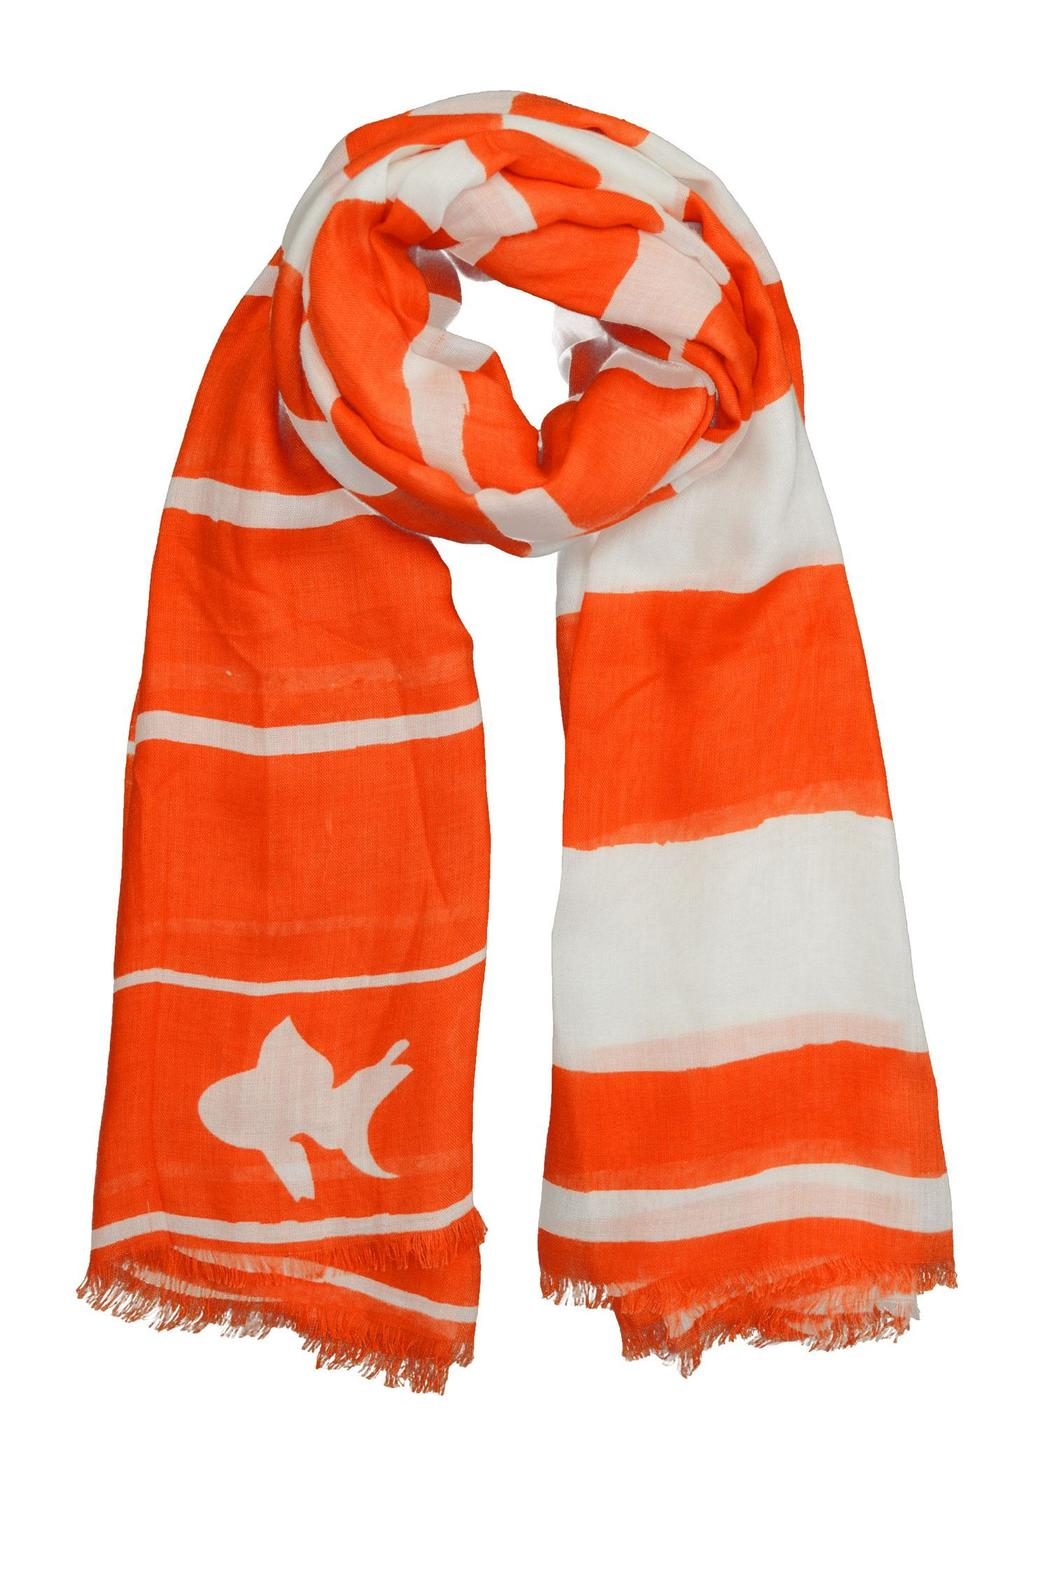 Winky Designs Orange Goldfish Scarf - Main Image